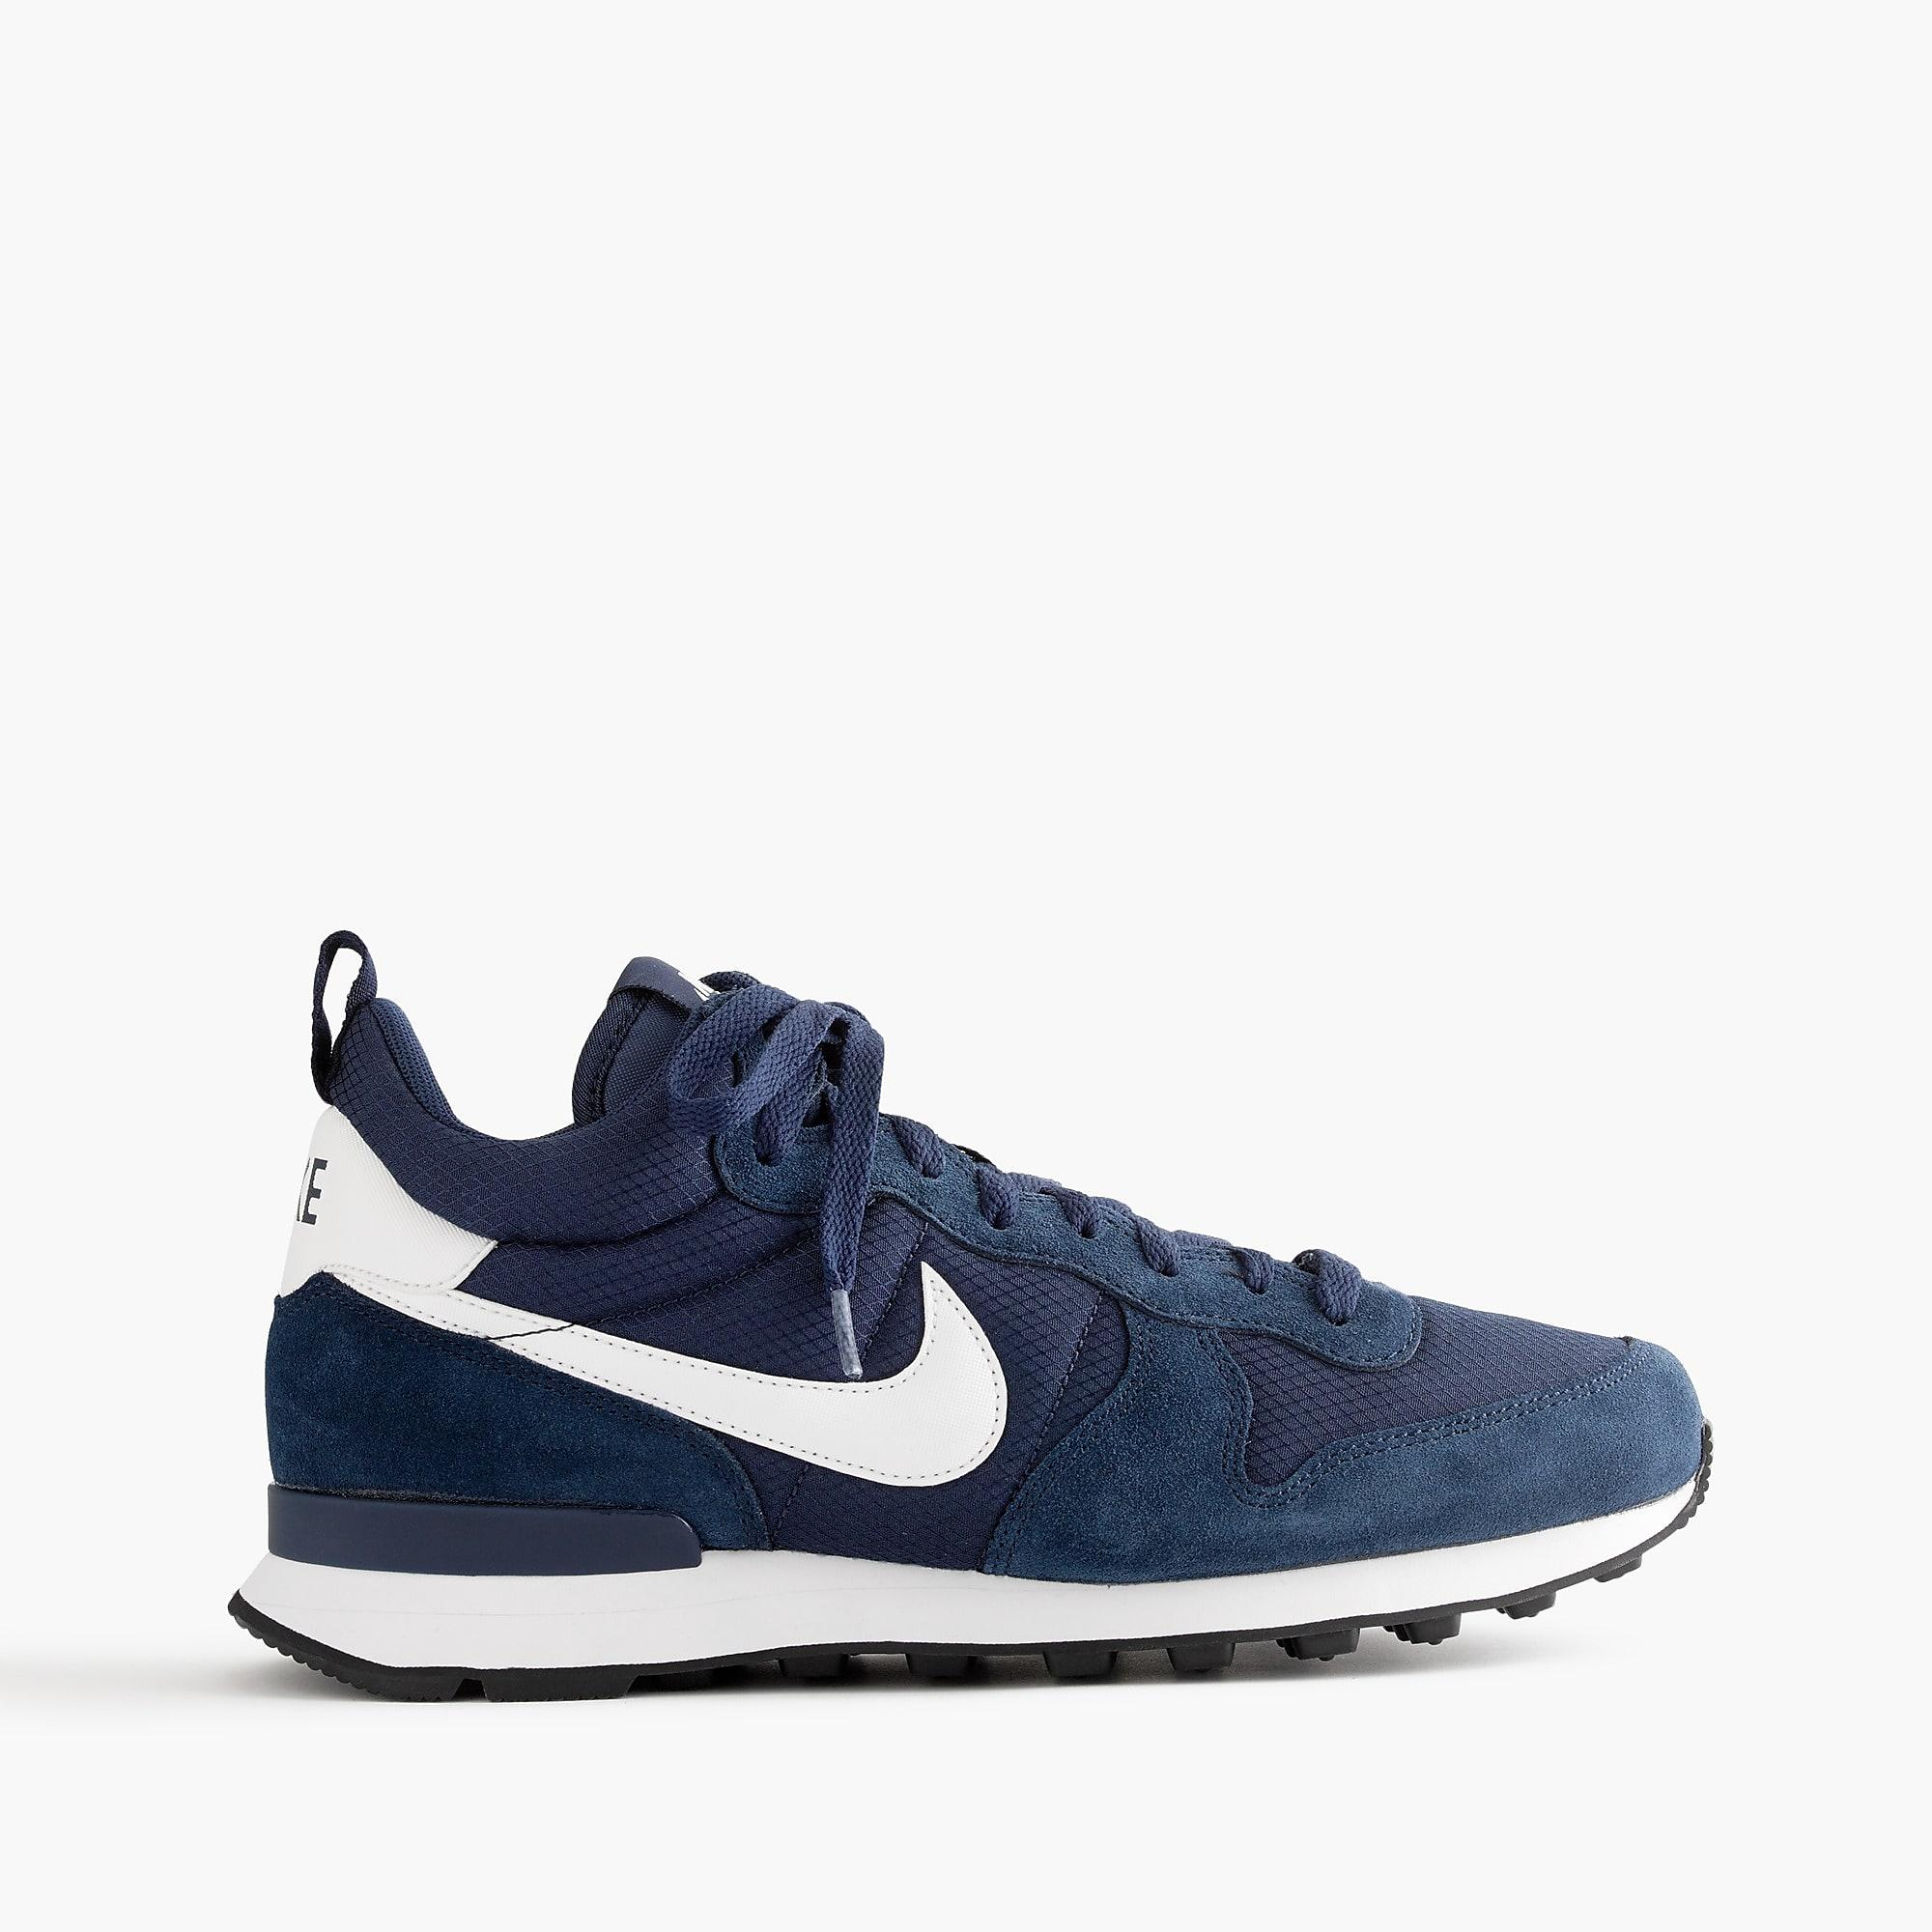 premium selection 09232 8fed9 Nike Internationalist Mid Sneakers In Navy in Blue for Men - Lyst